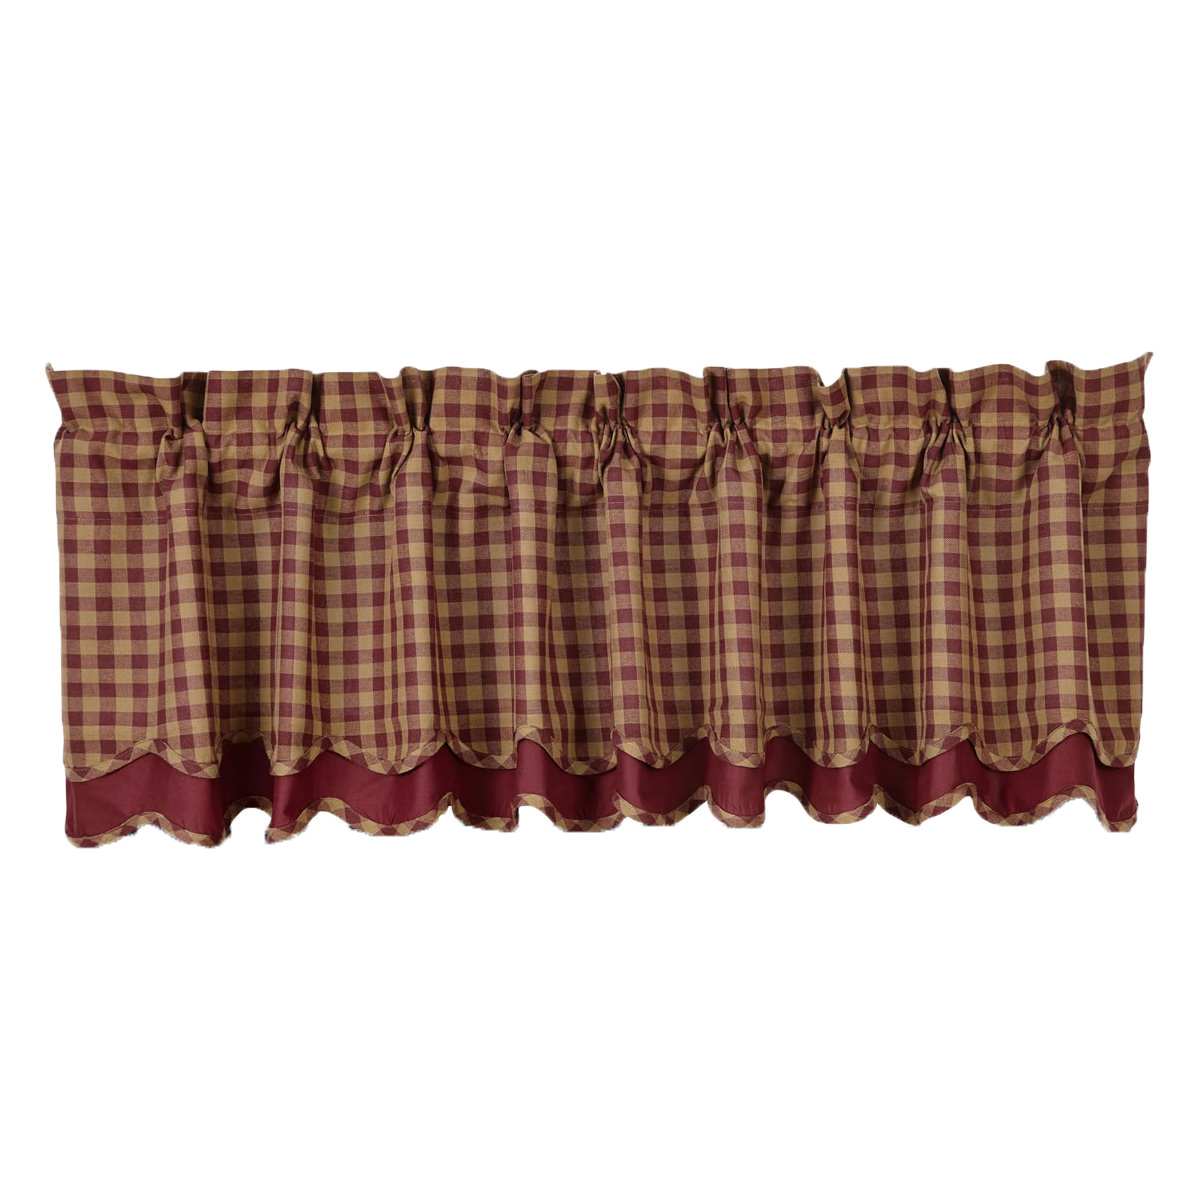 BURGUNDY CHECK Scalloped Valance Layered Lined- 16x72 - Burgundy/Tan -VHC Brands